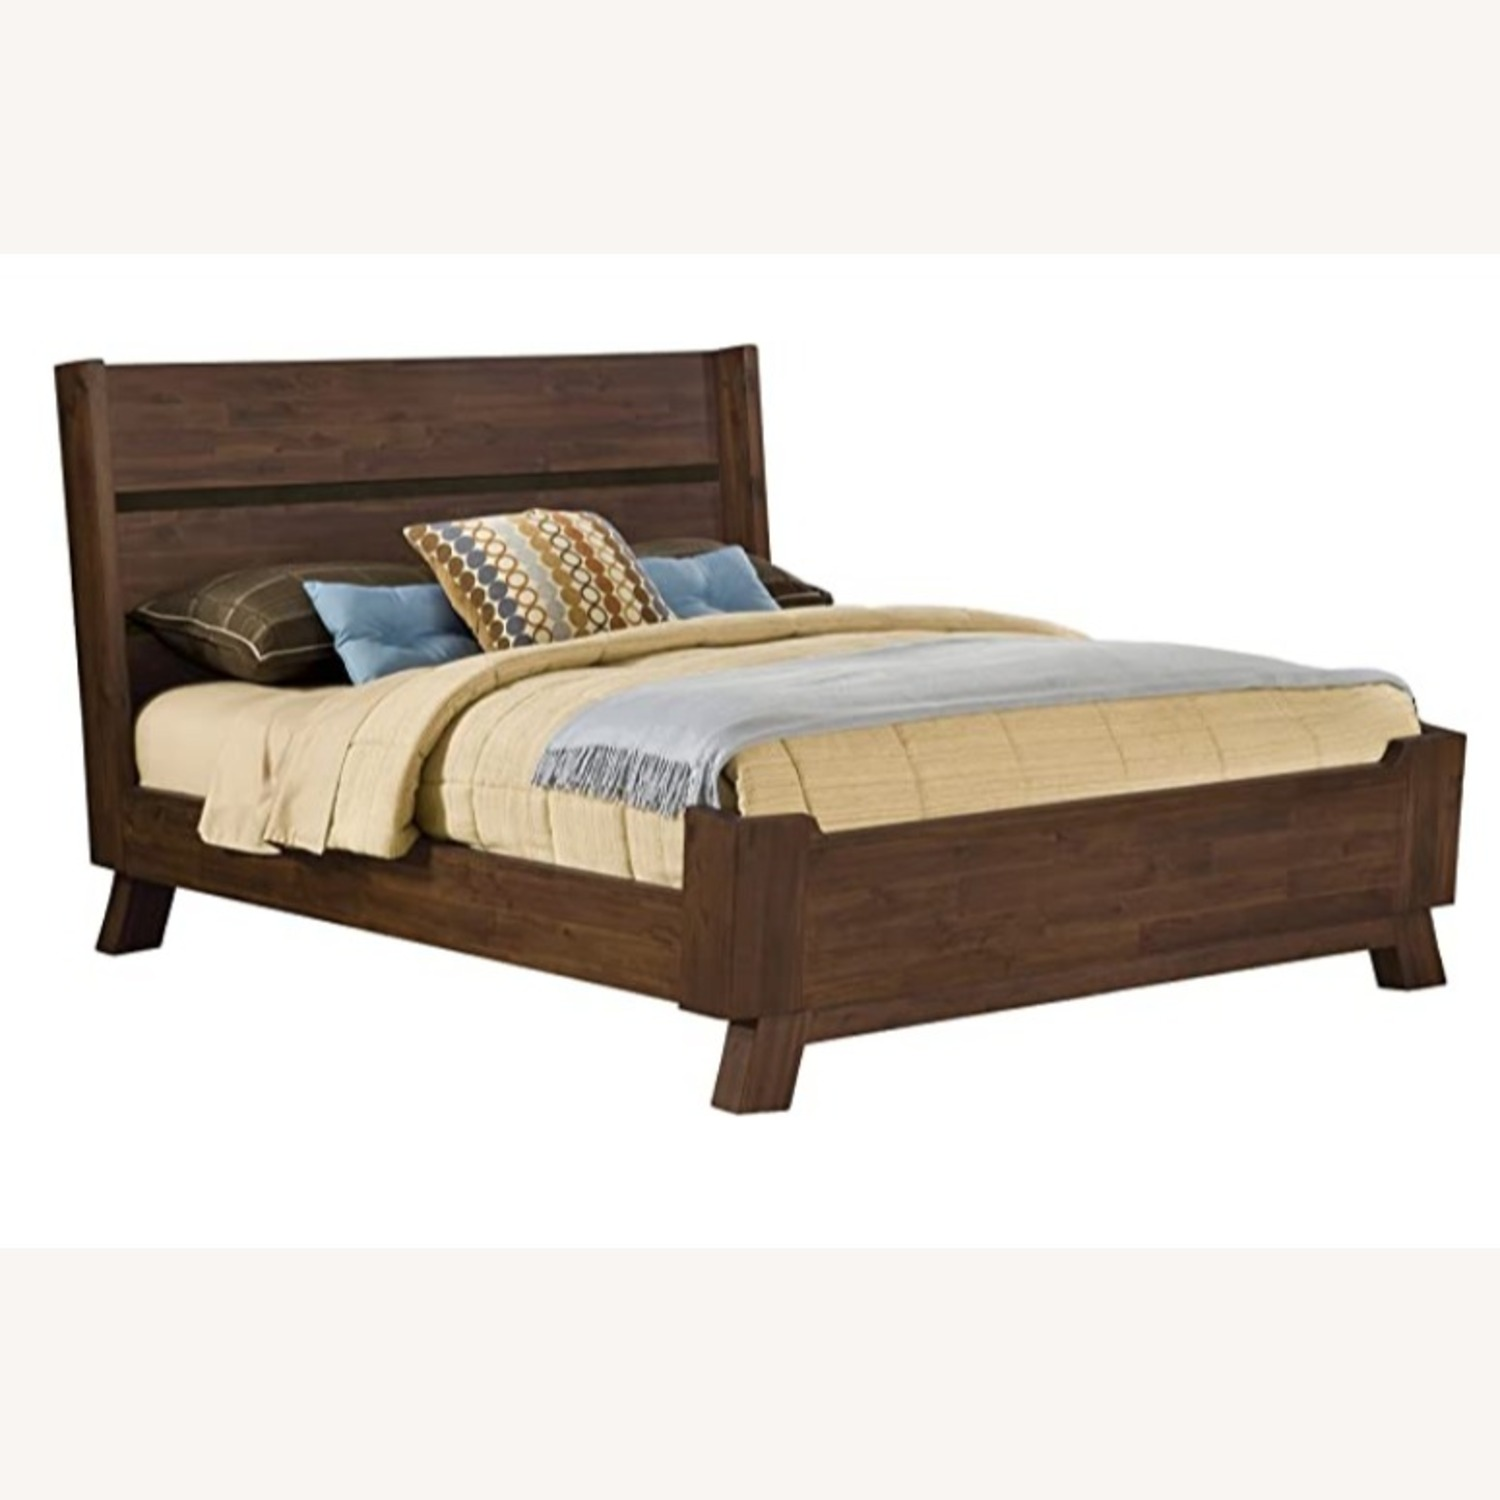 Modus Furniture Solid Wood Queen Bed - image-2